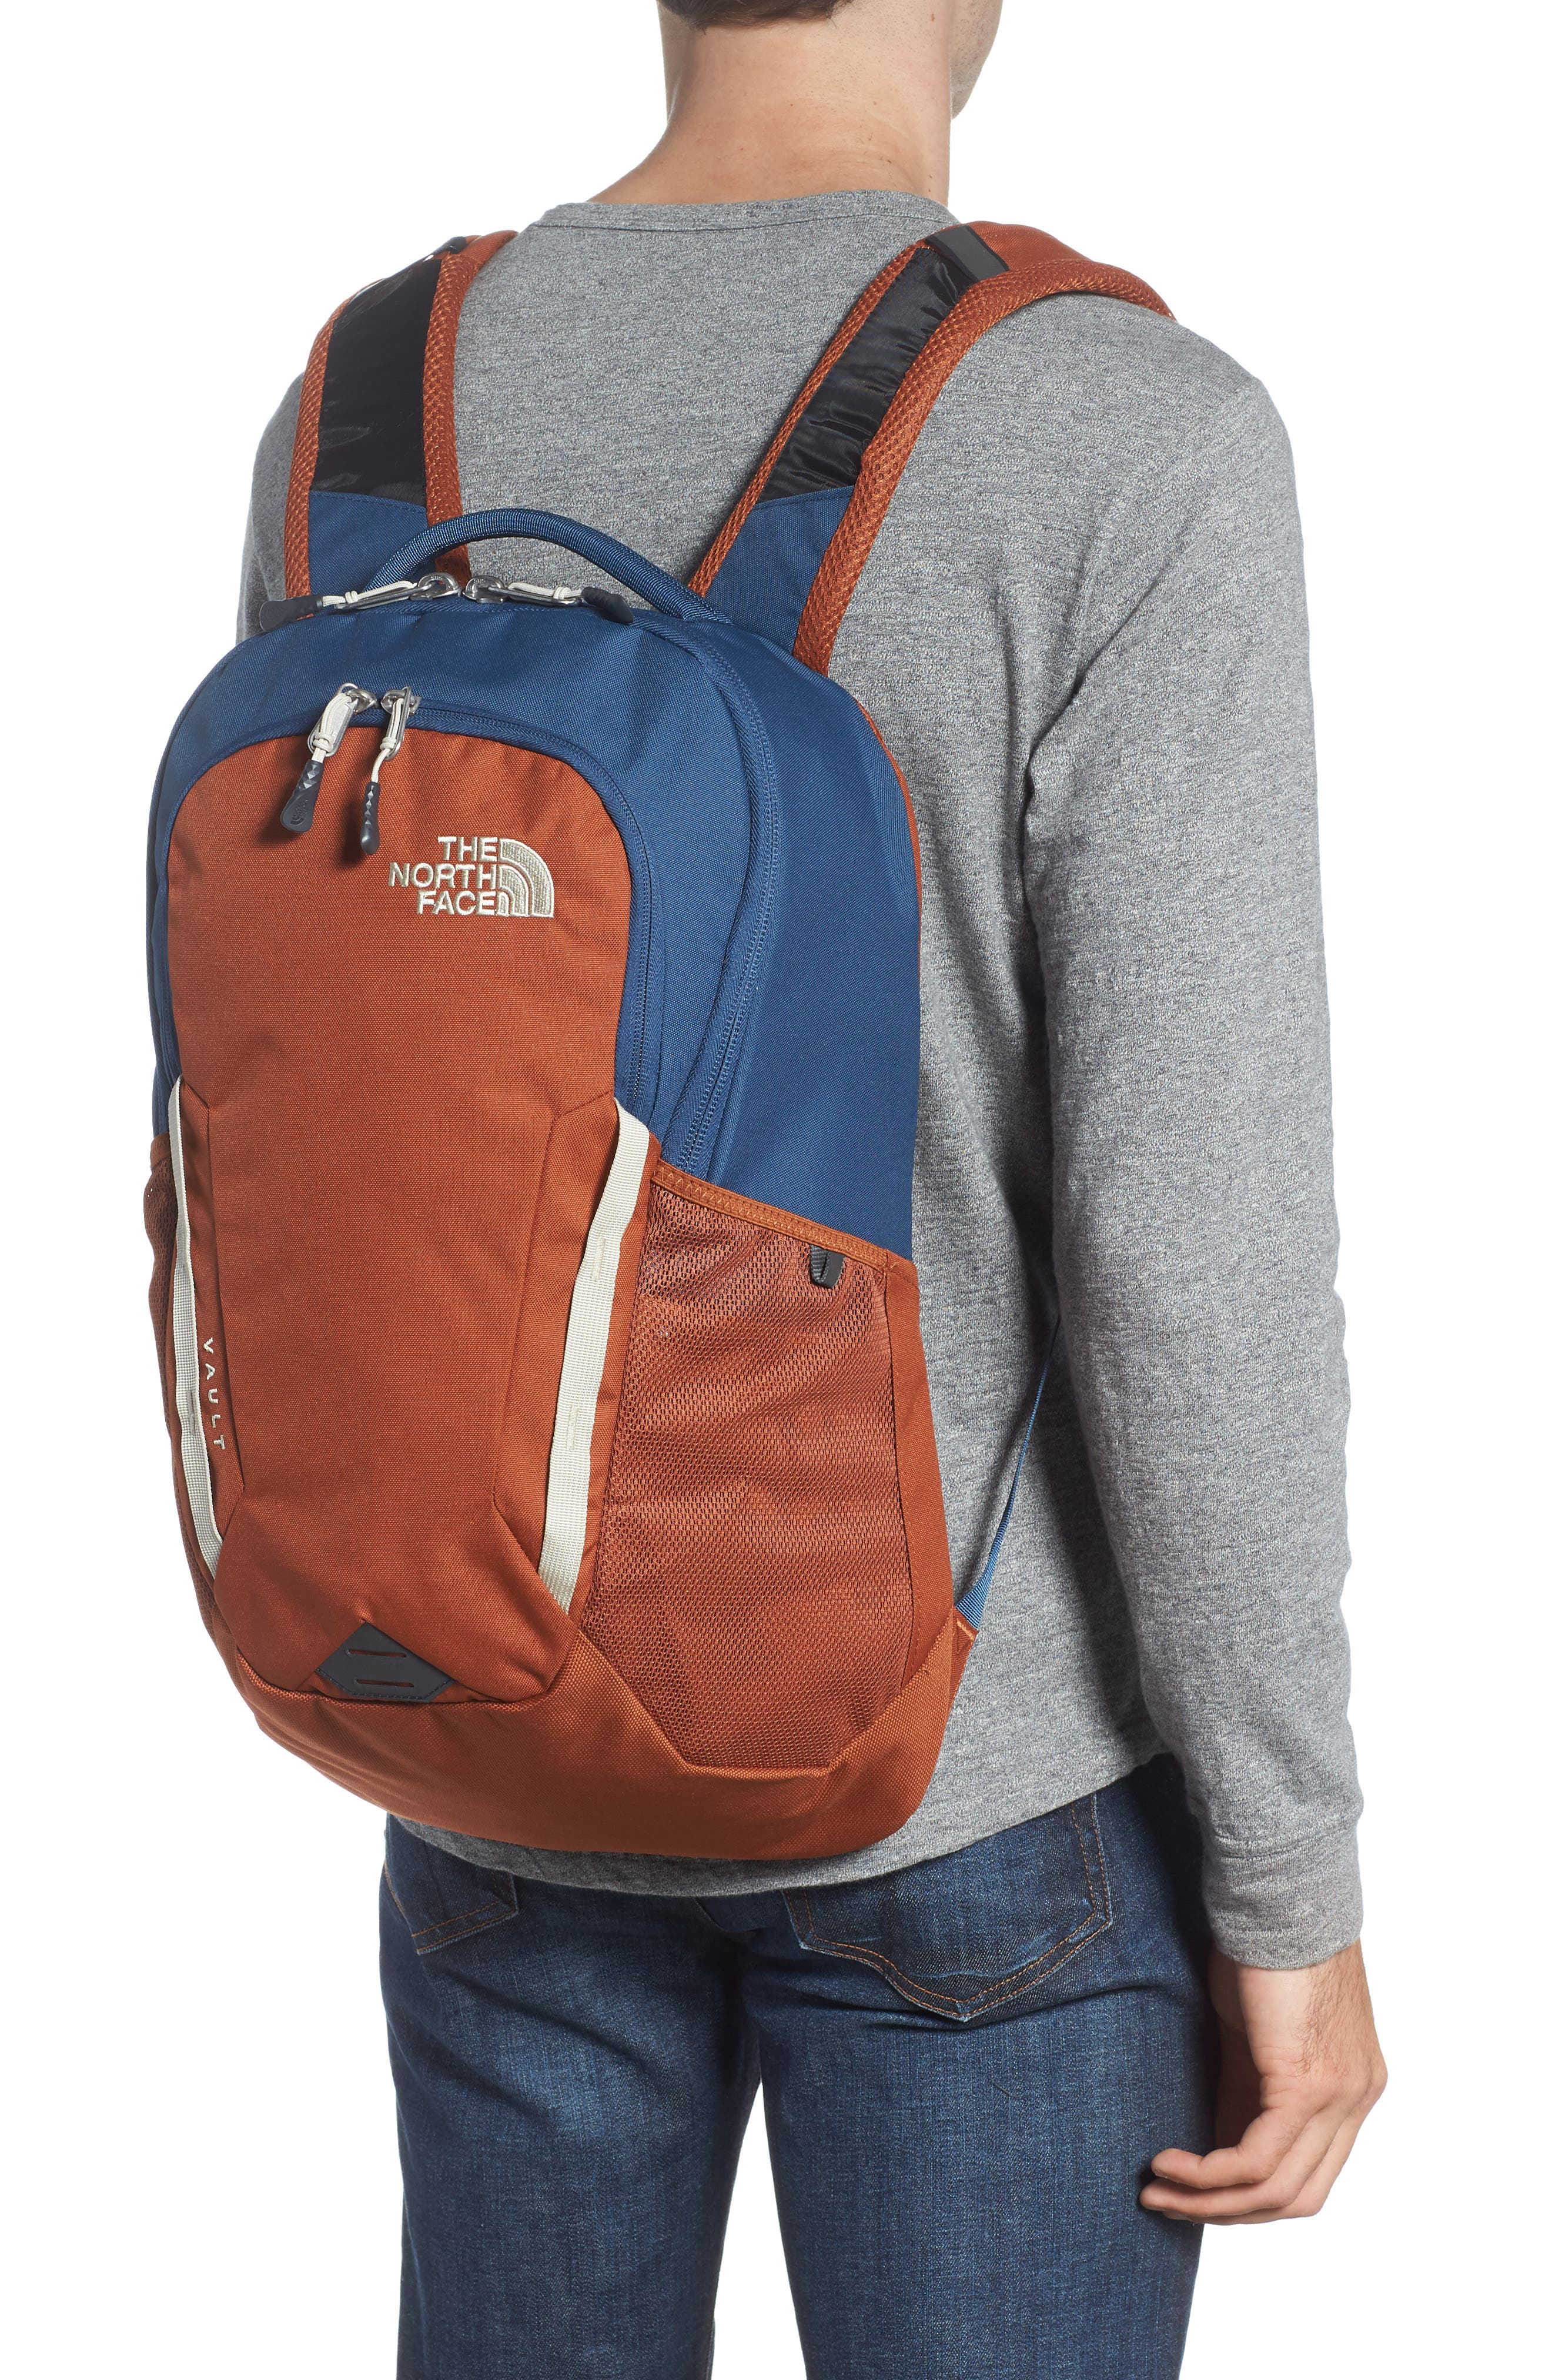 Vault Backpack,                             Alternate thumbnail 2, color,                             Shady Blue/ Gingerbread